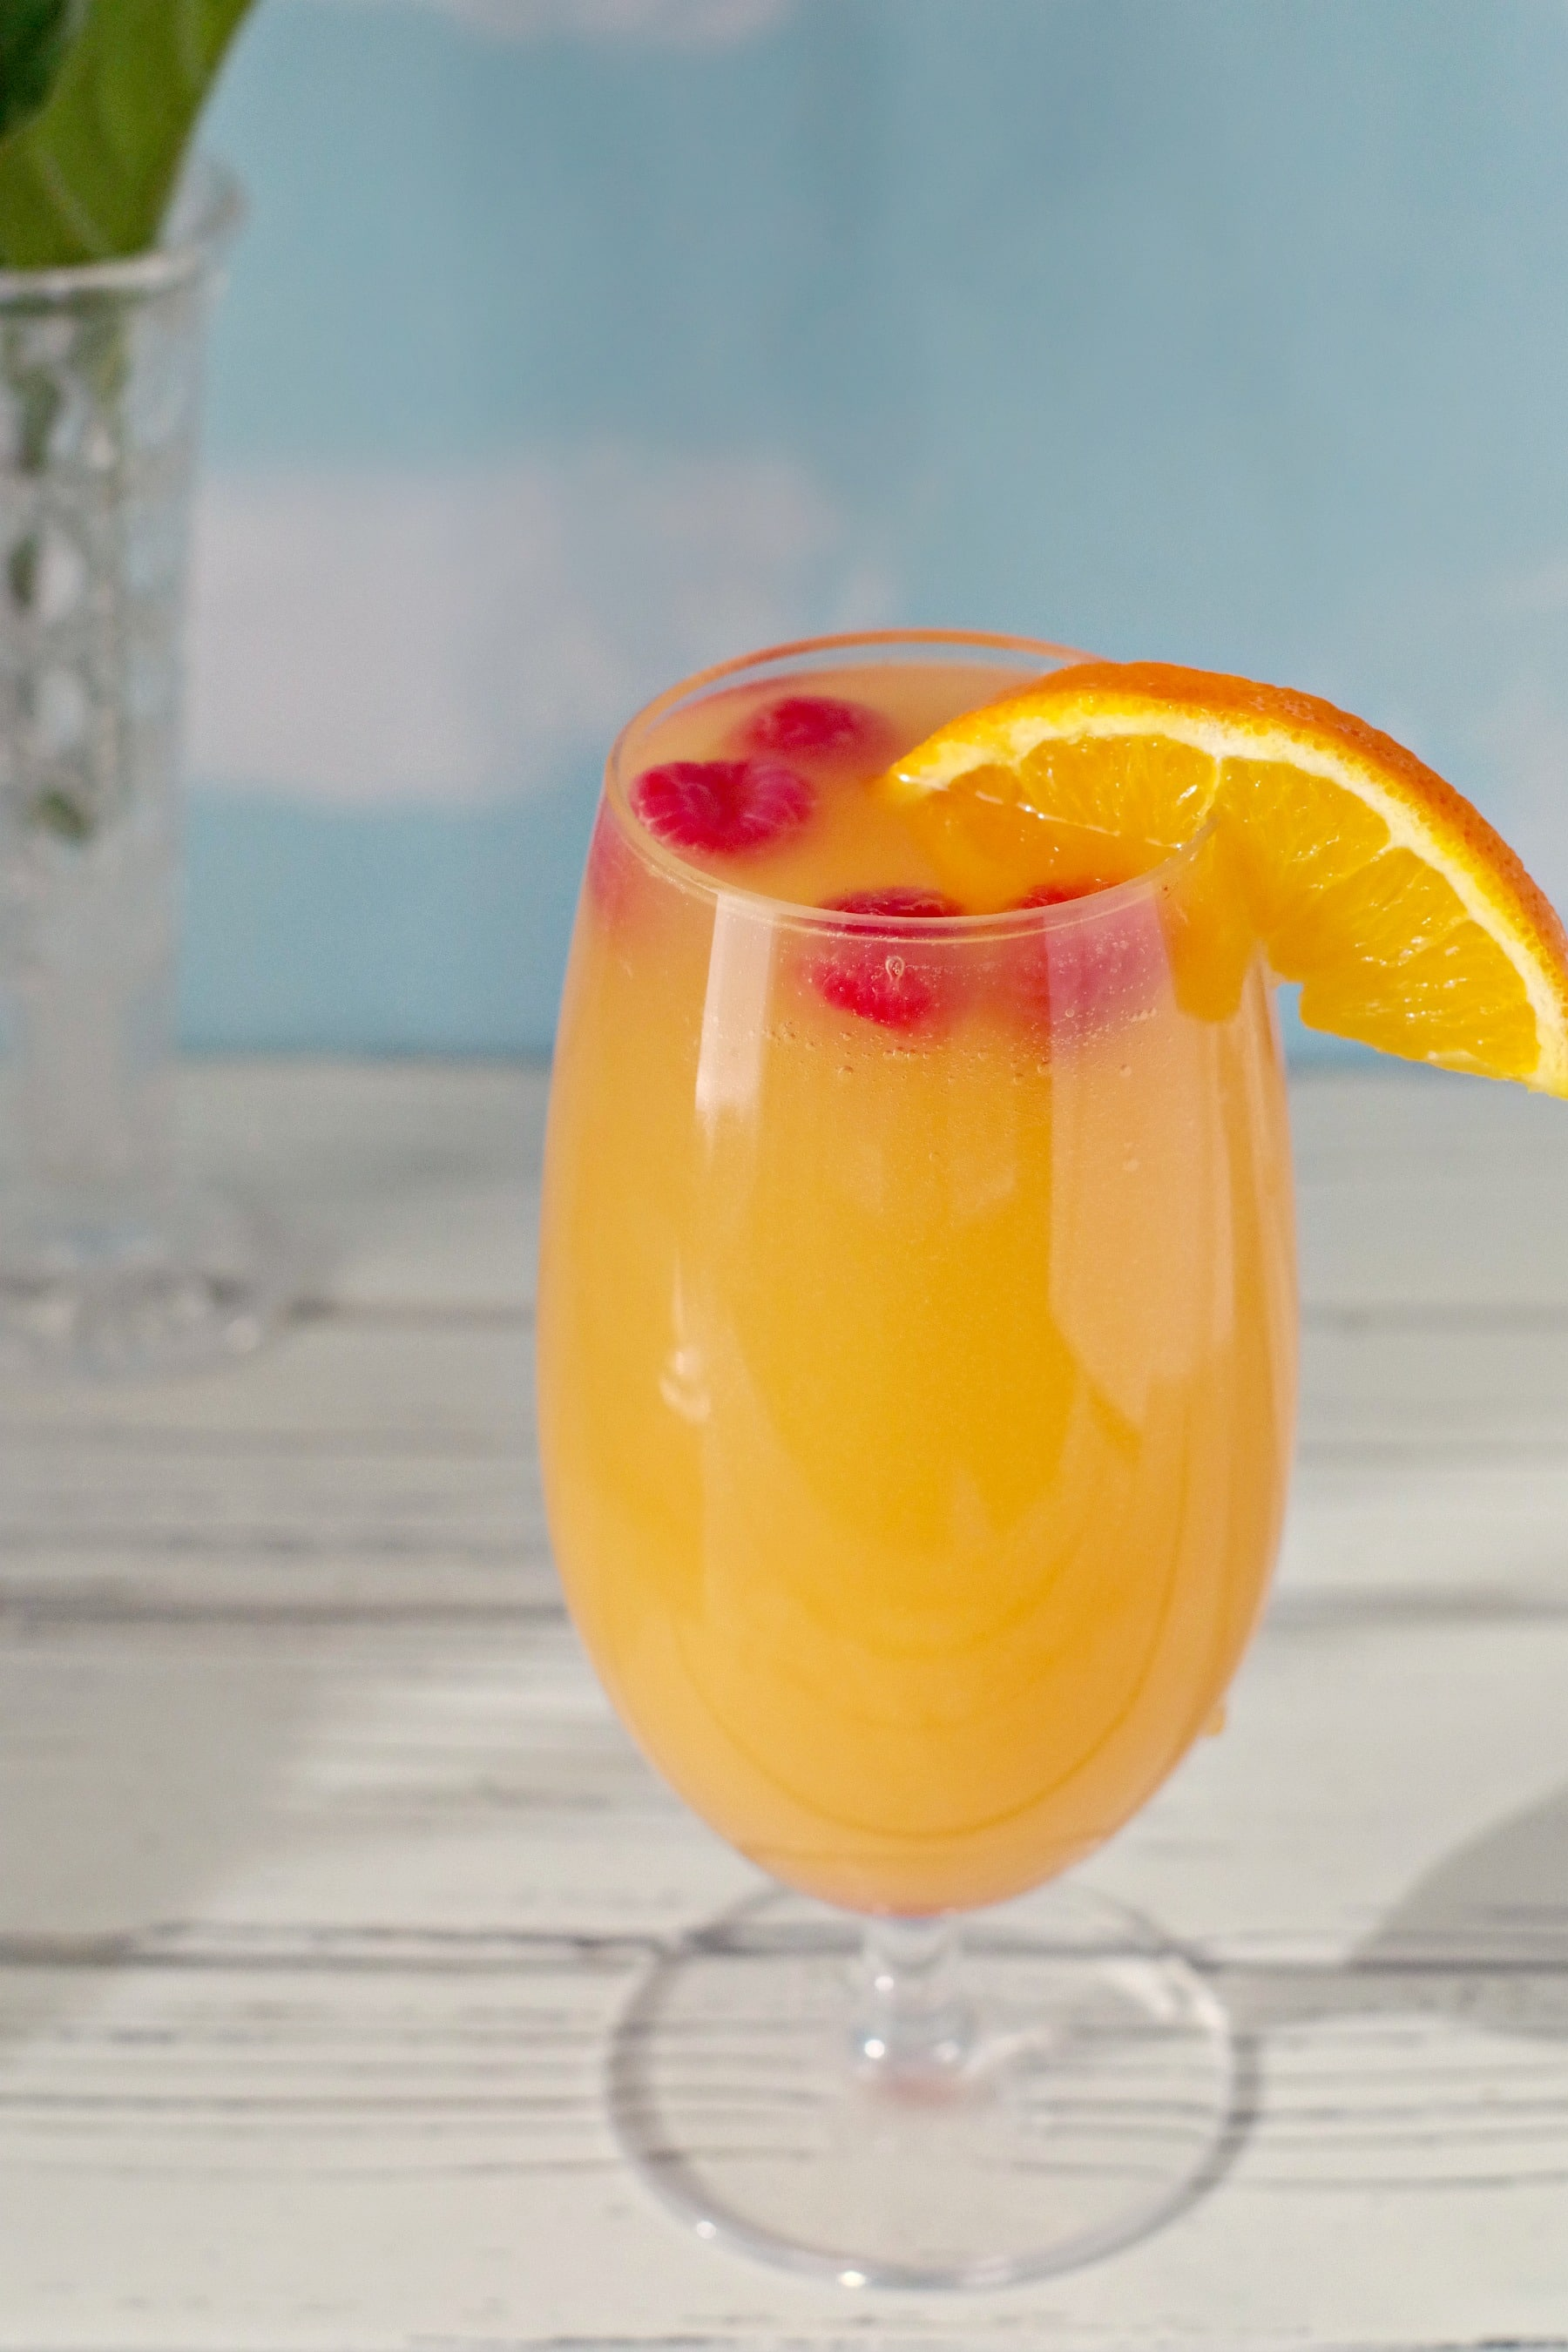 mimosa drink with raspberries and orange garnish